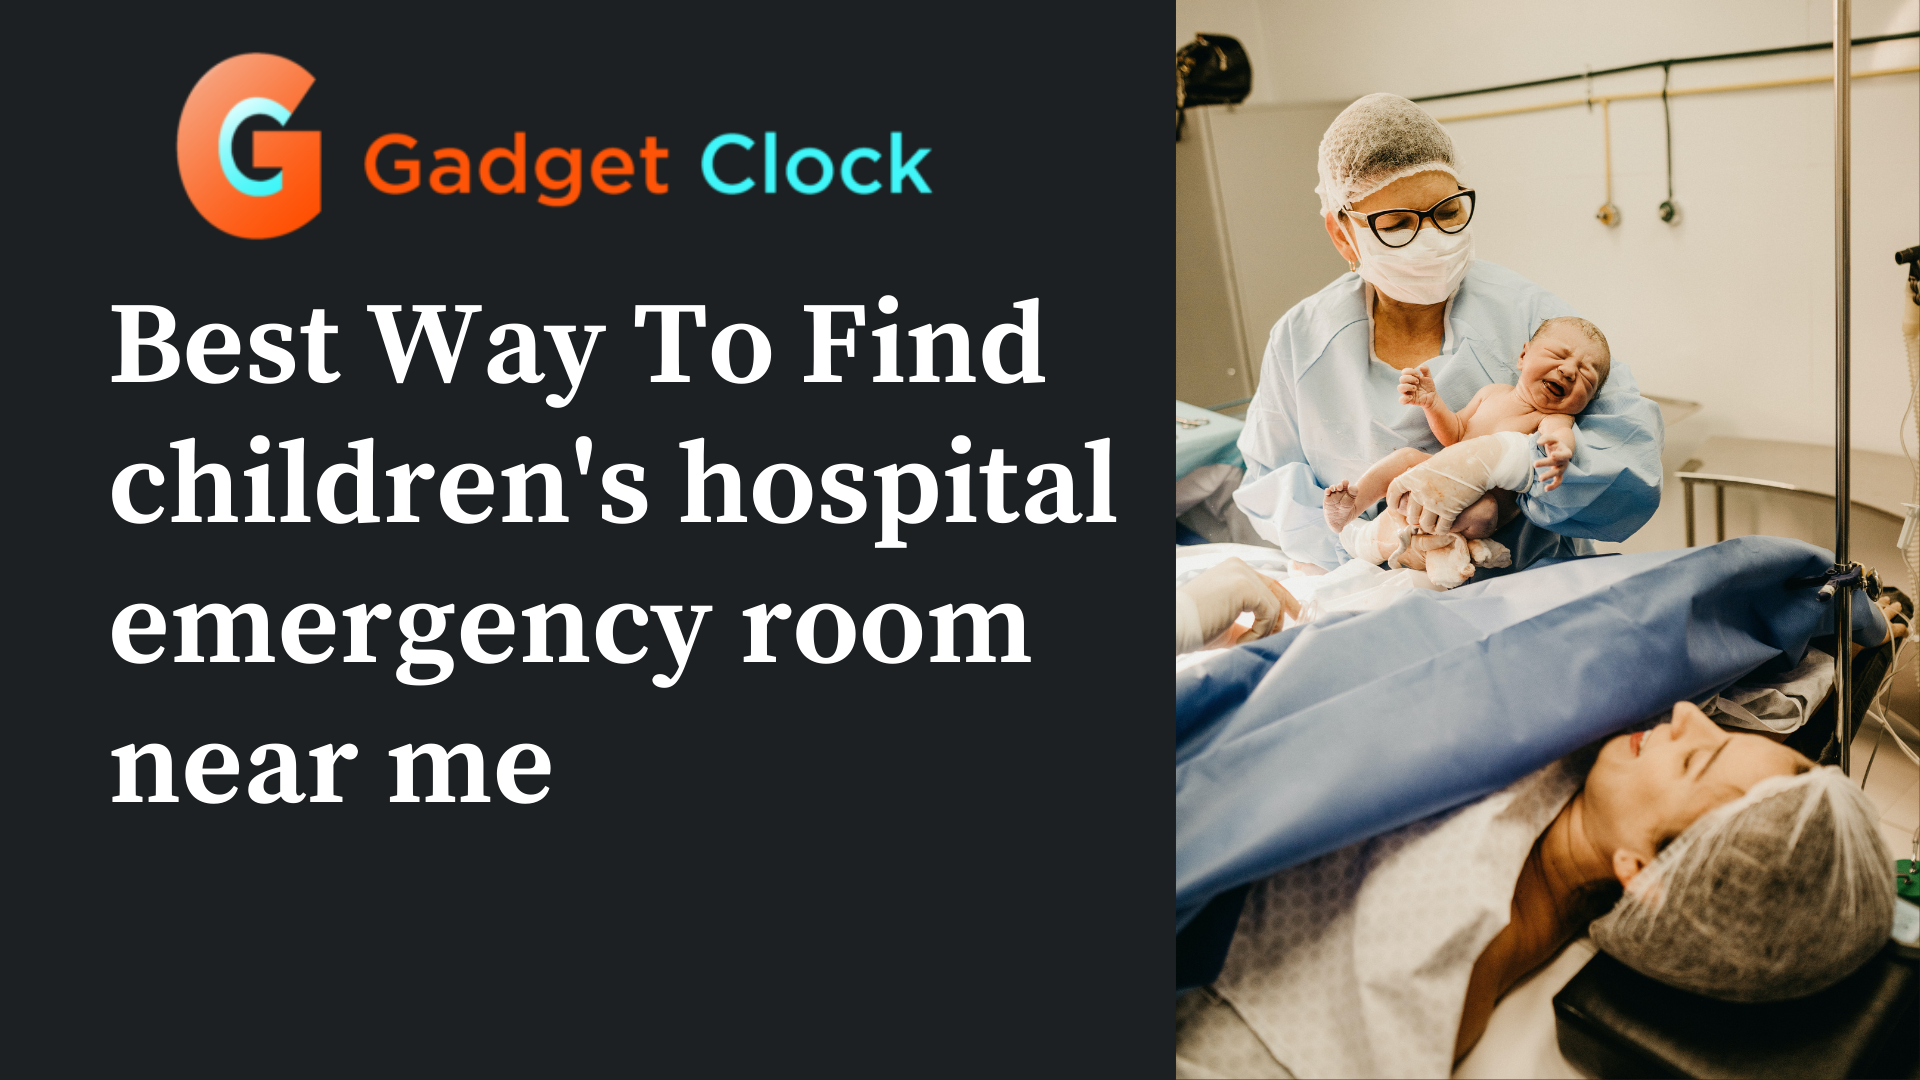 Search for Children's Hospital Emergency Room Near Me to Get More Information!